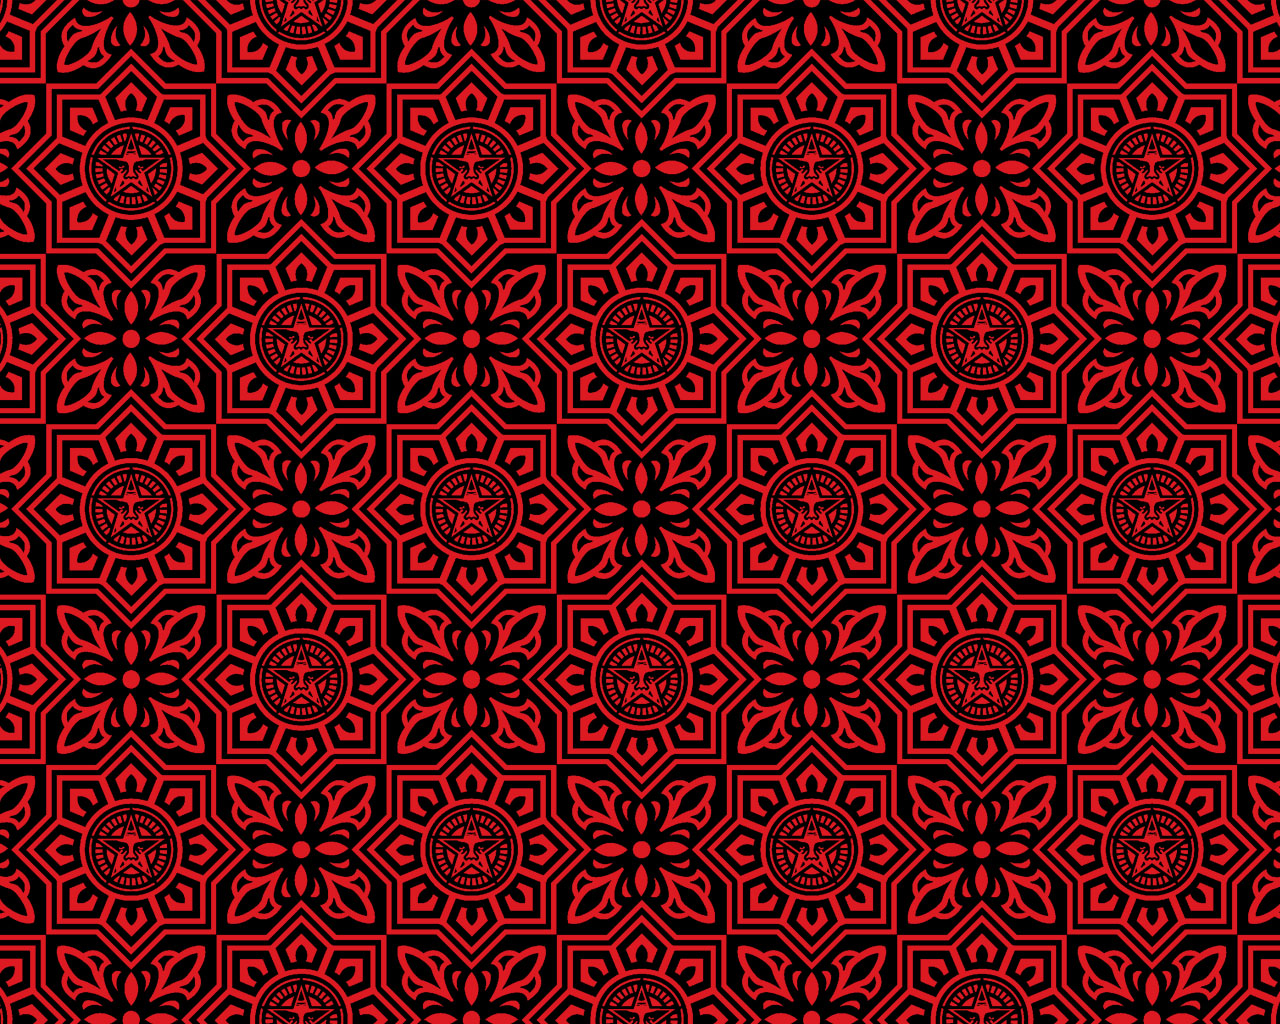 obey wallpaper 01jpg 1280x1024